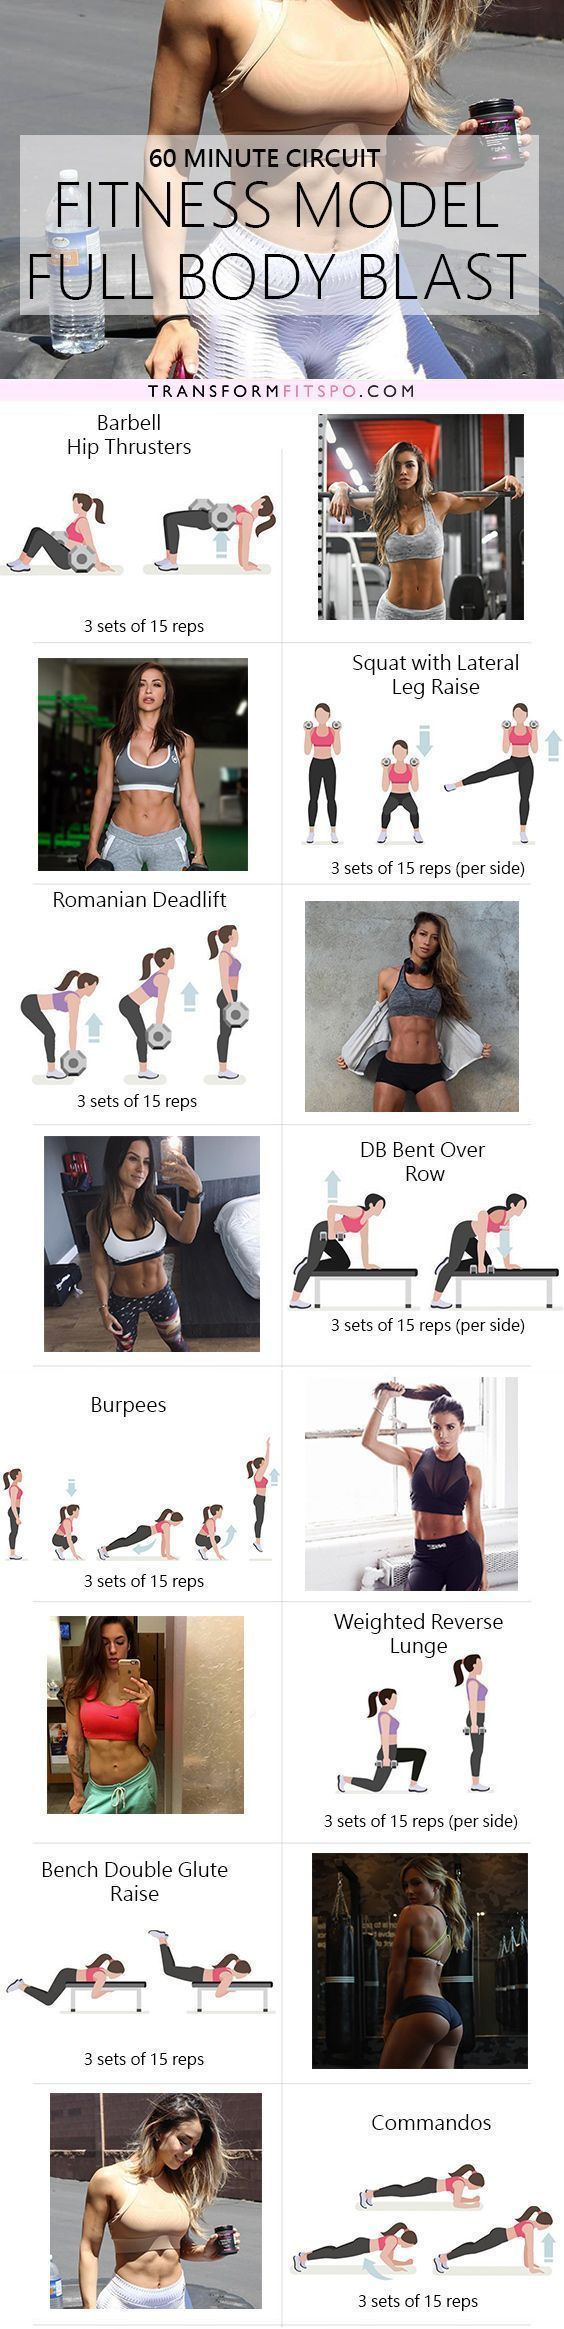 Fitness Girl Full Body Workout - Instagram's Top Fitness Models Circuit - #Body #Circuit #Fitness #f...